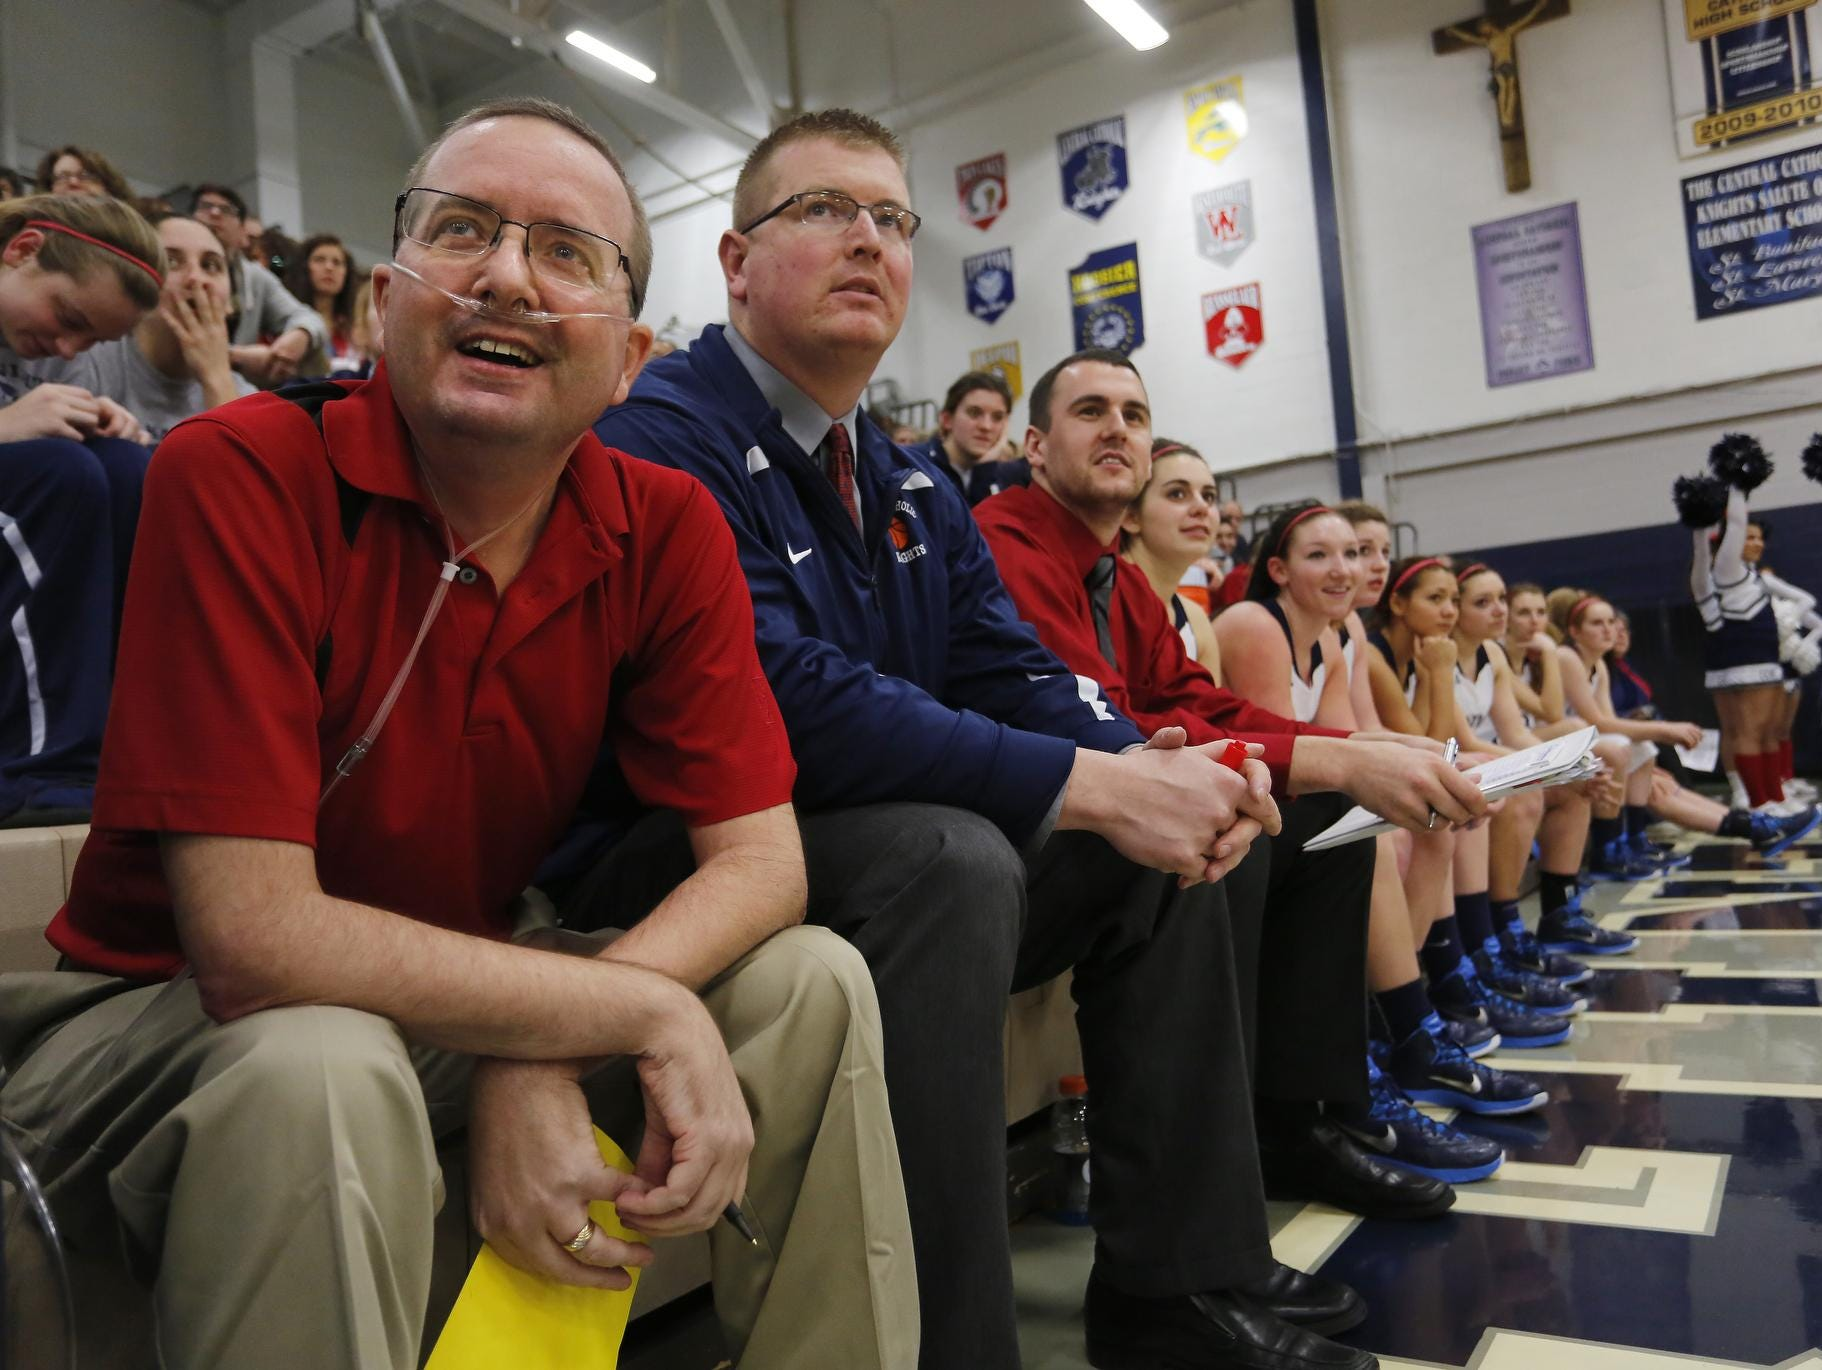 Central Catholic assistant girls basketball coach Jeff Dienhart, left, smiles as he watches the action with fellow assistant coaches Dave Crandall and Drake Barrett as the Knights host Guerin Catholic Friday, January 30, 2015, at Central Catholic Jr./Sr. High School. It was the first game for Dienhart in quite a while, as he had spent the better part of the month of January in the hospital. Dienhart is set to receive stem cell treatment in the Dominican Republic to hopefully assist in his battle with cystic fibrosis.